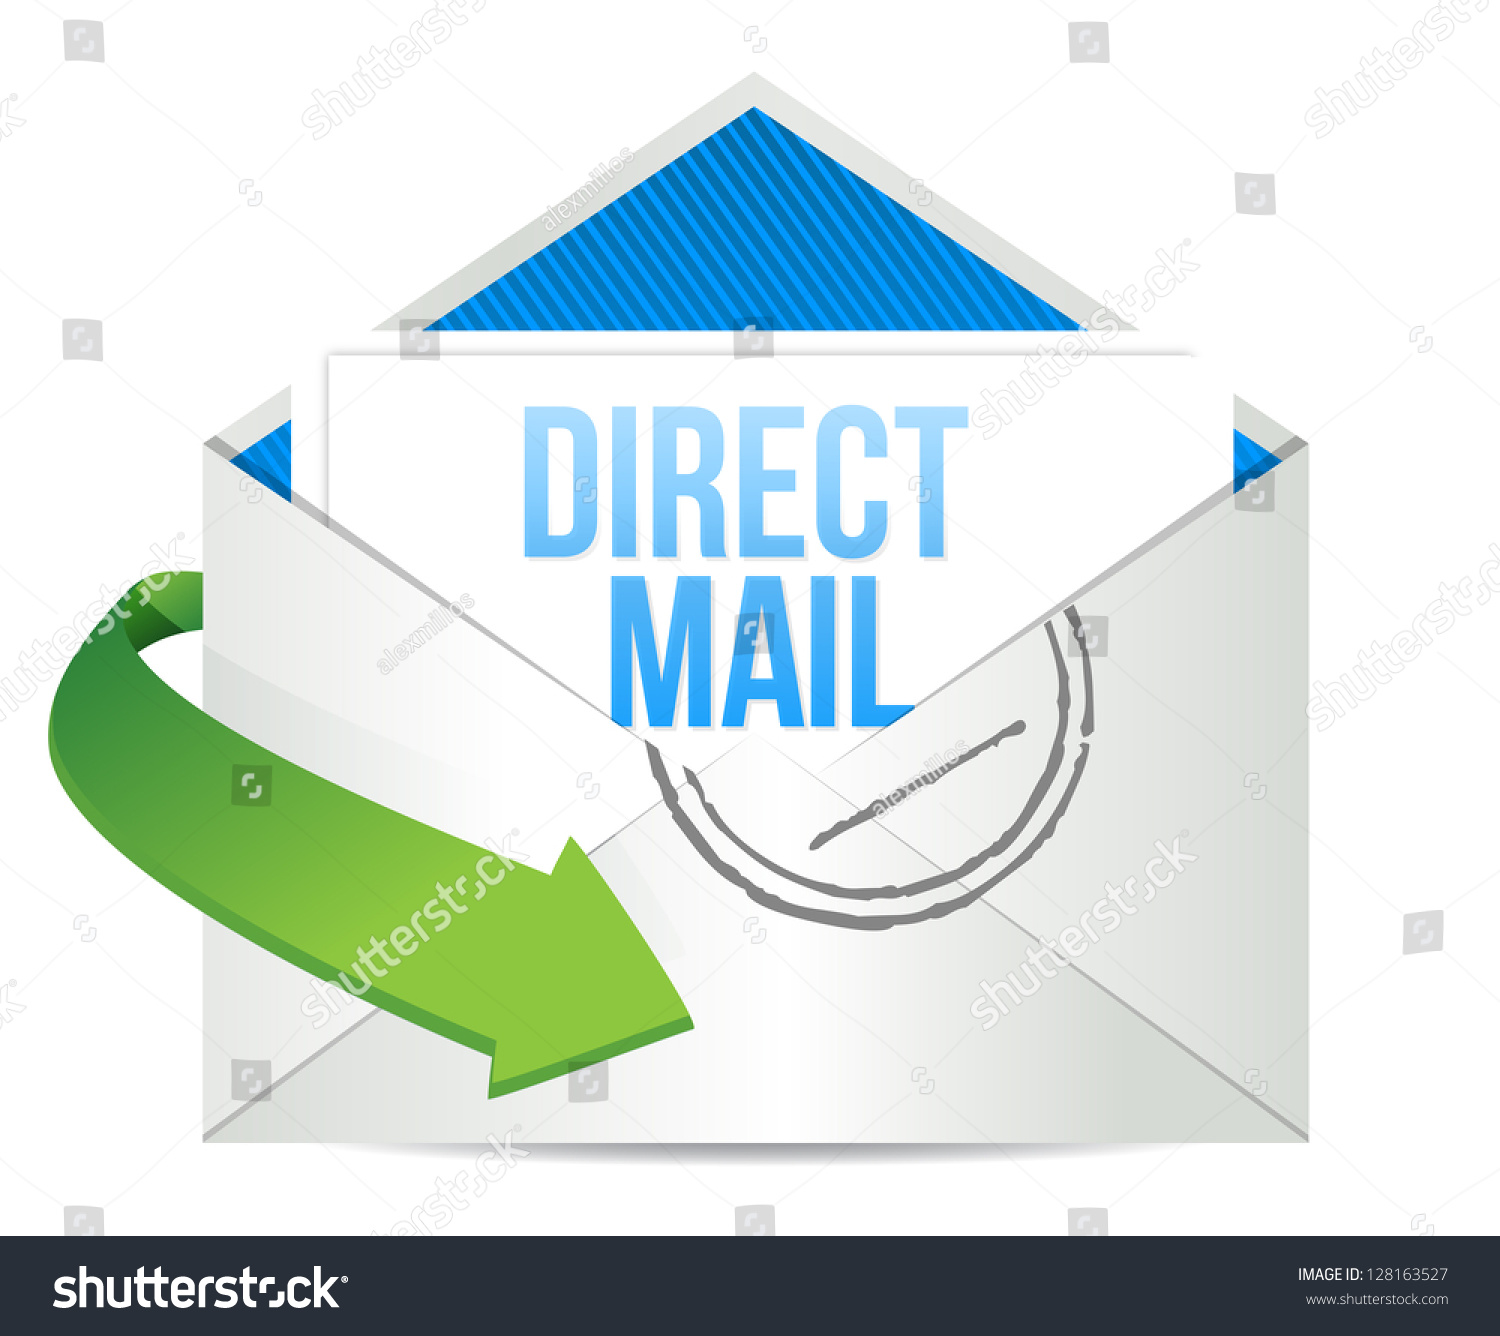 advertising direct mail working concept illustrationのイラスト素材